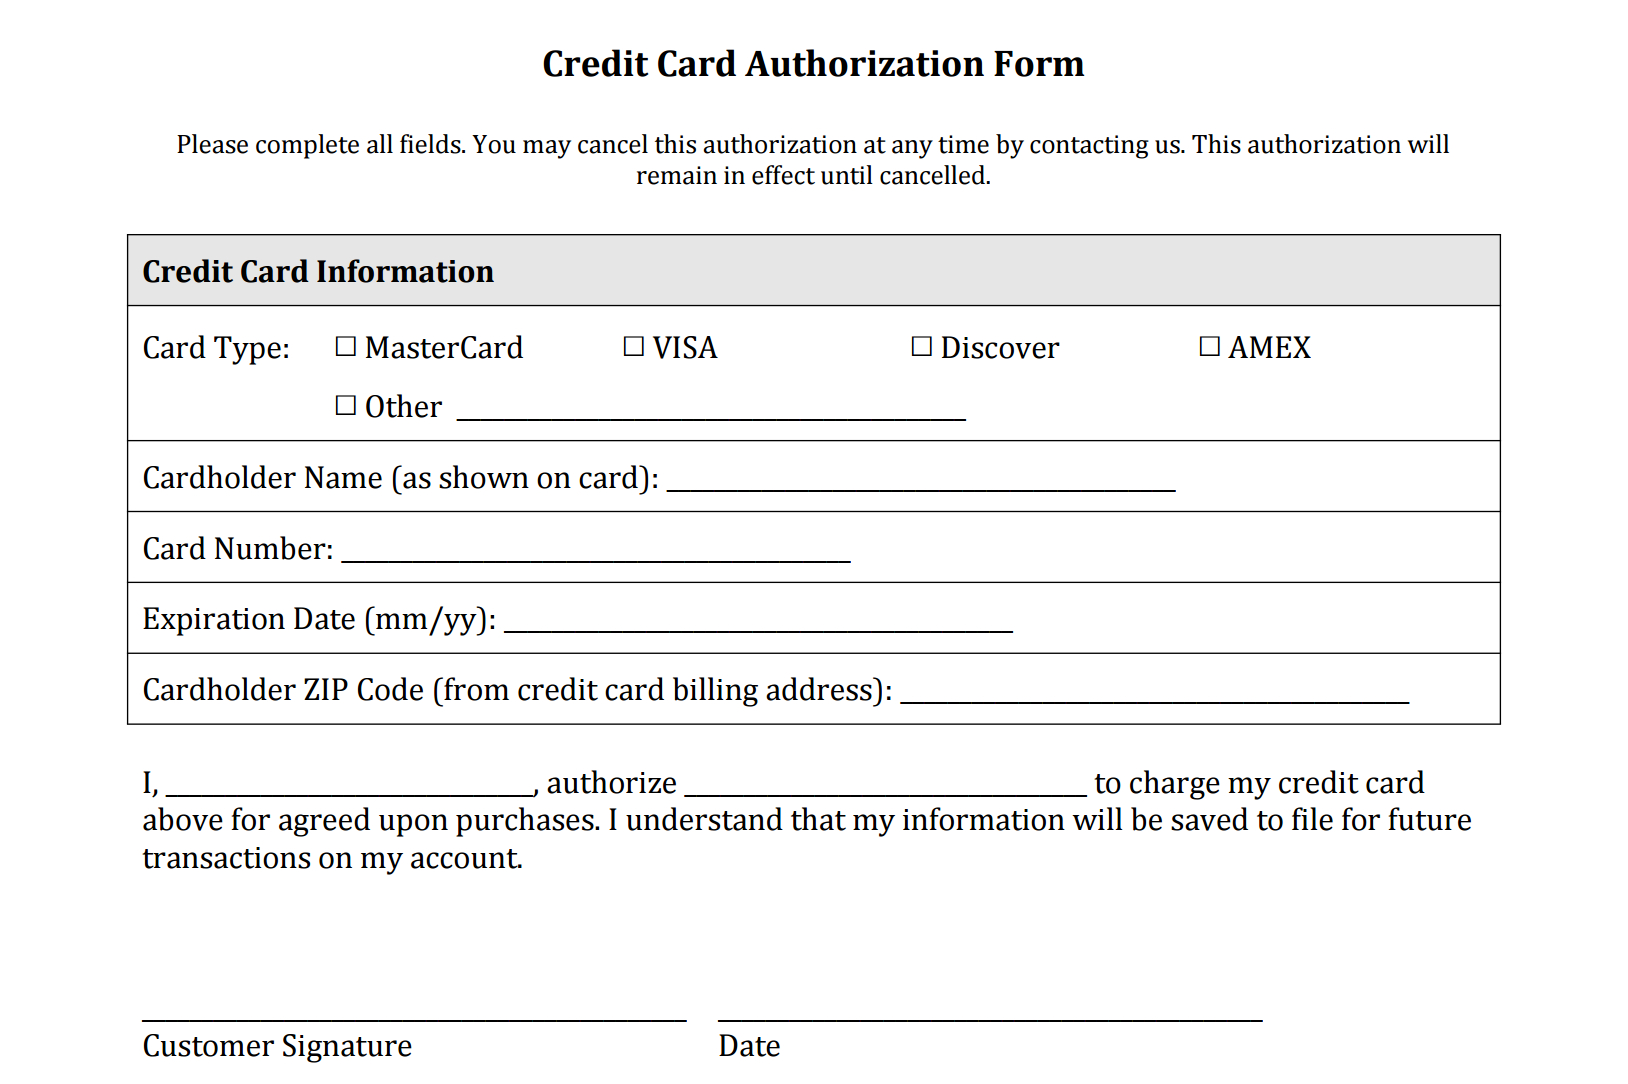 Credit Card Authorization Form Templates [Download] Inside Authorization To Charge Credit Card Template